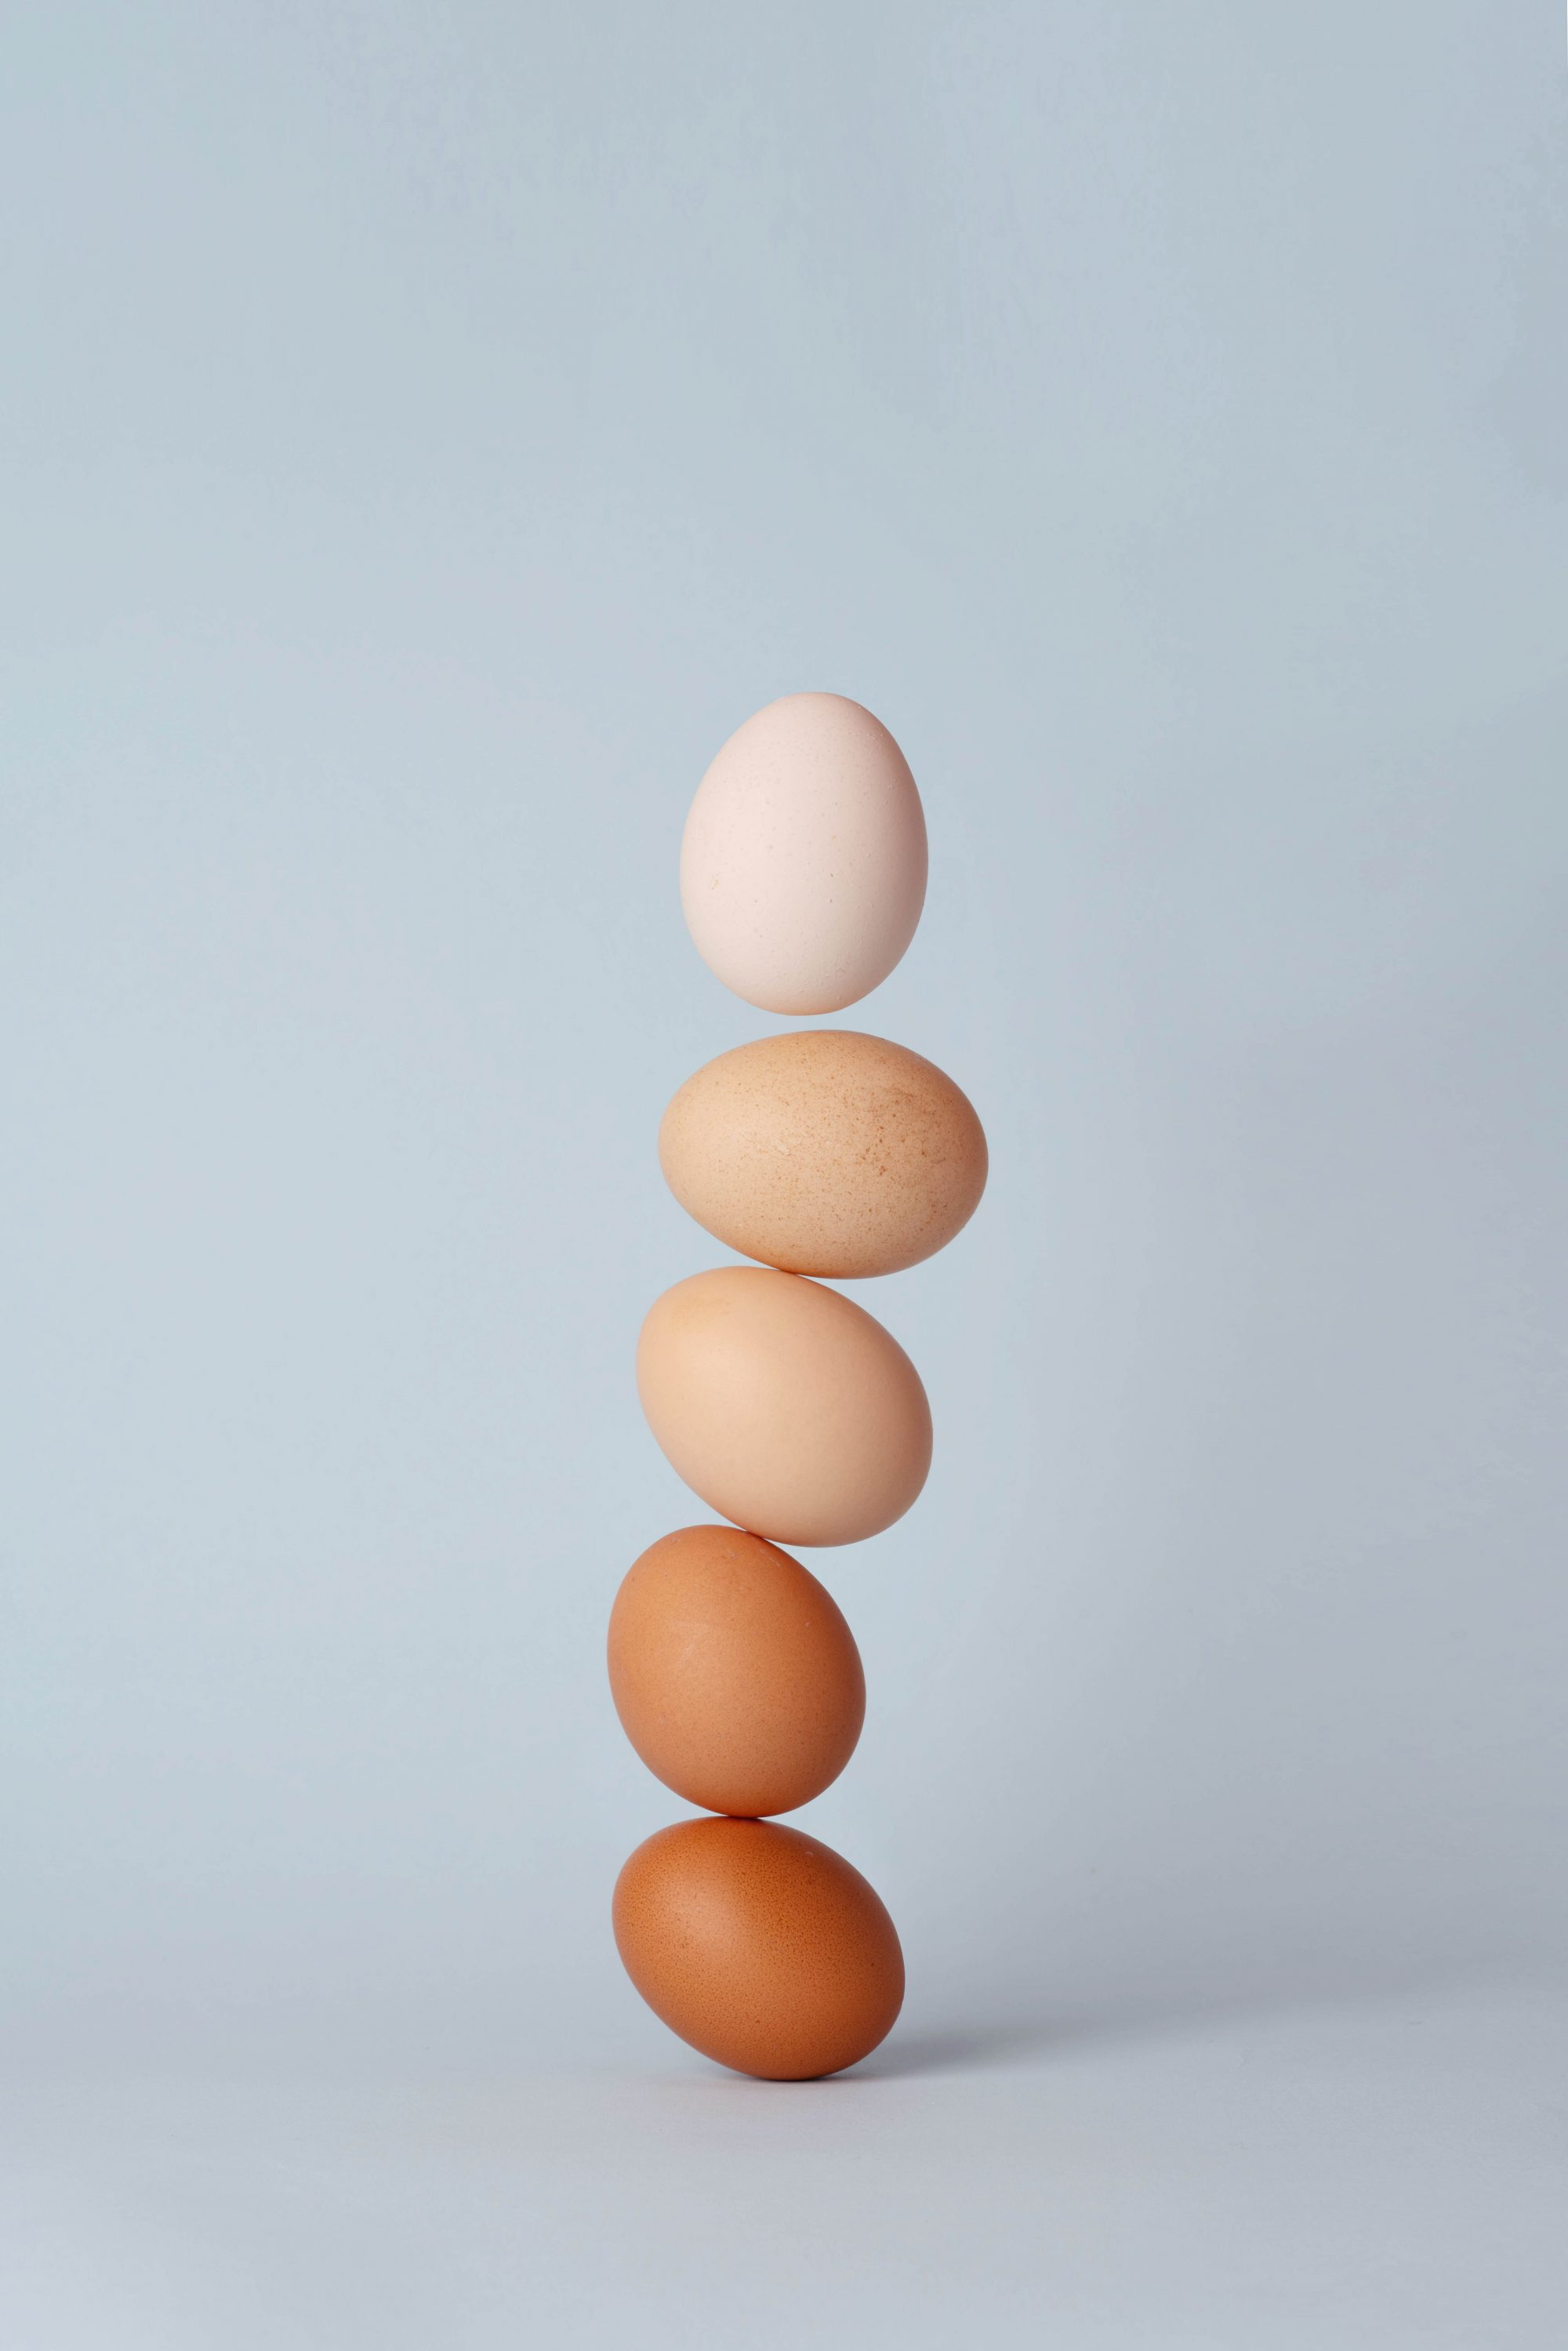 jiangxulei unsplash eggs